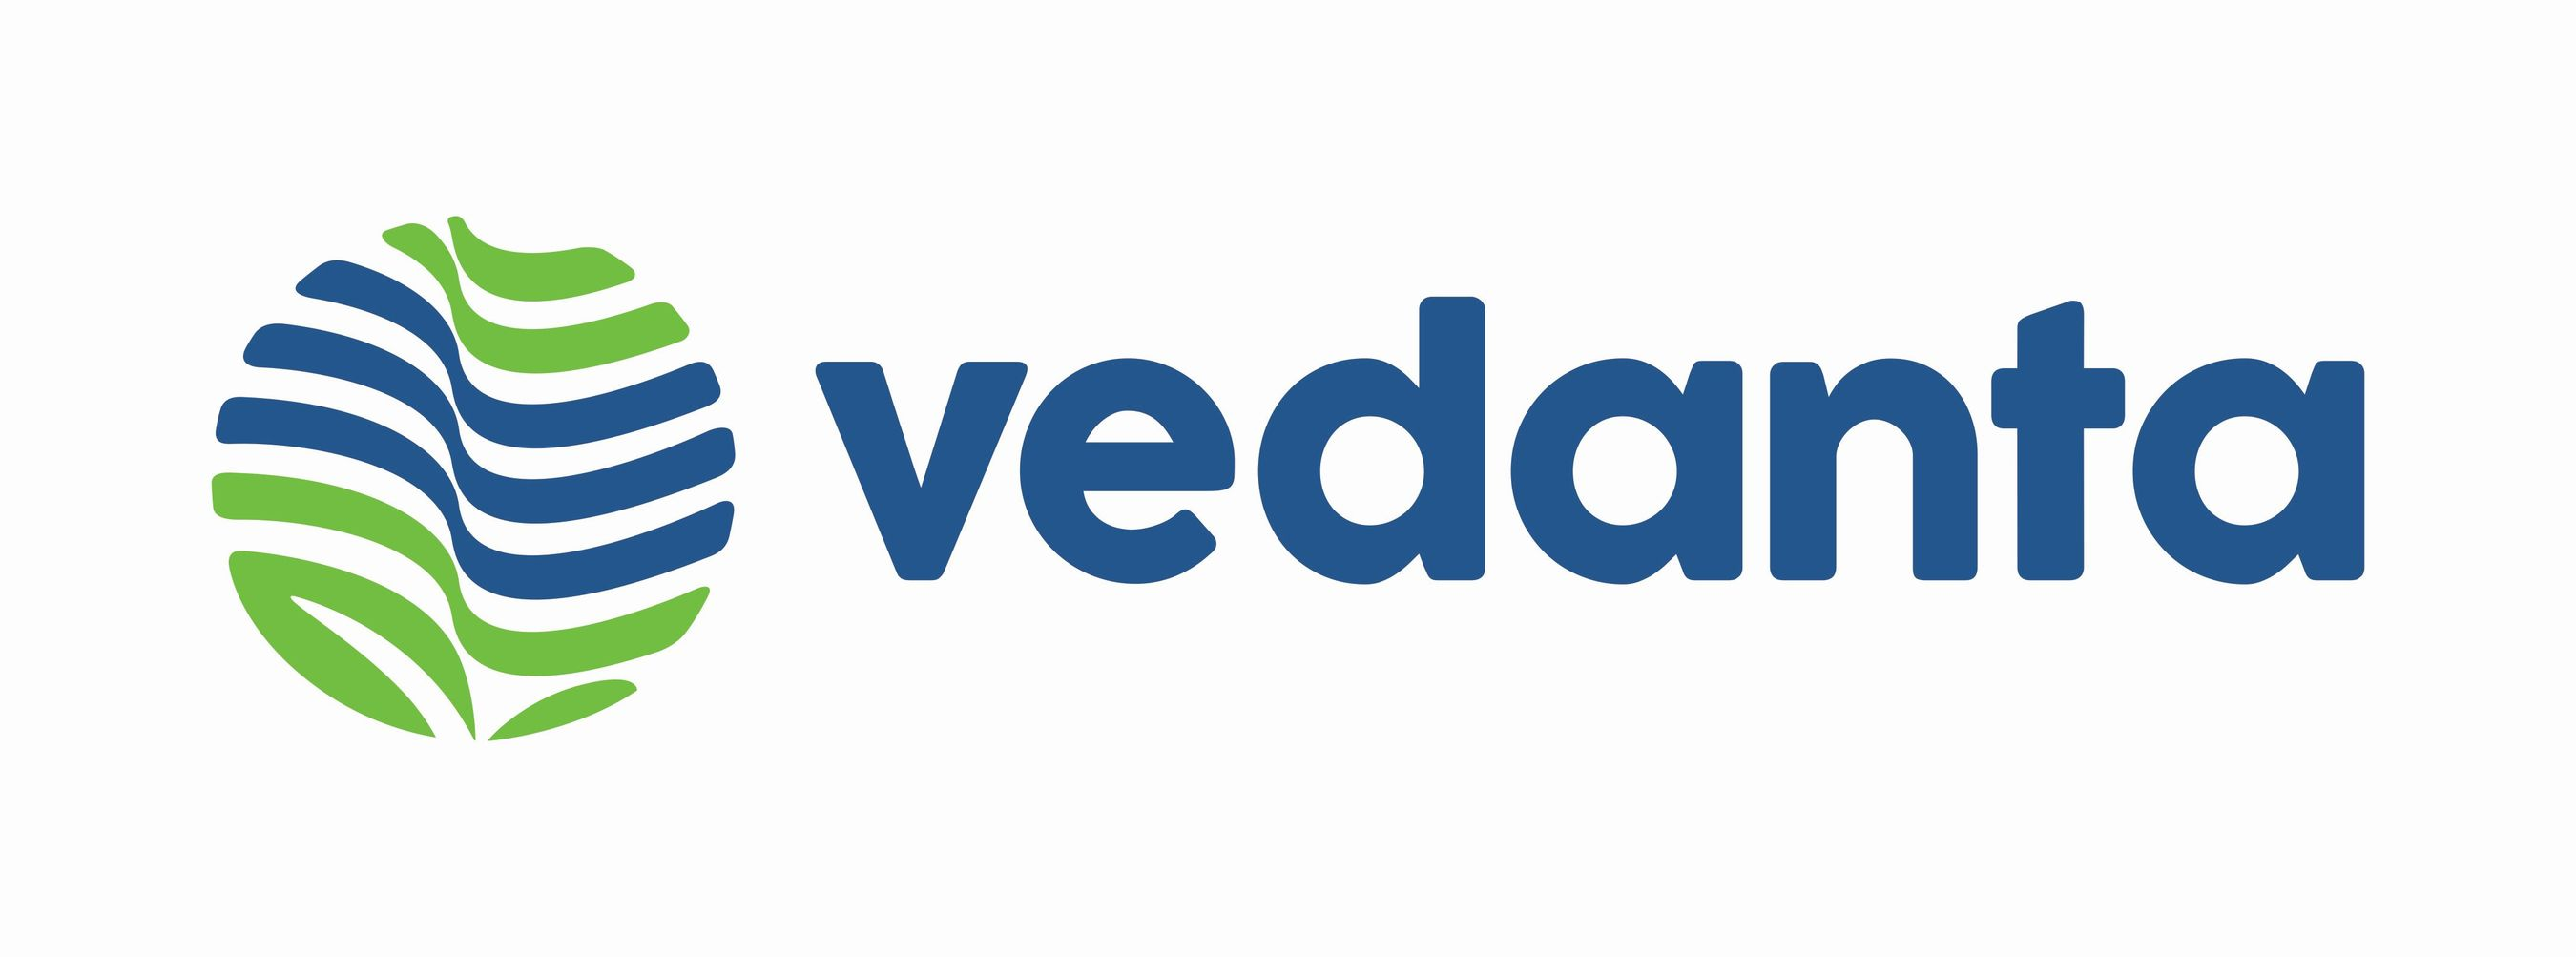 Vedanta Limited - Extension of USD 1.25bn Loan